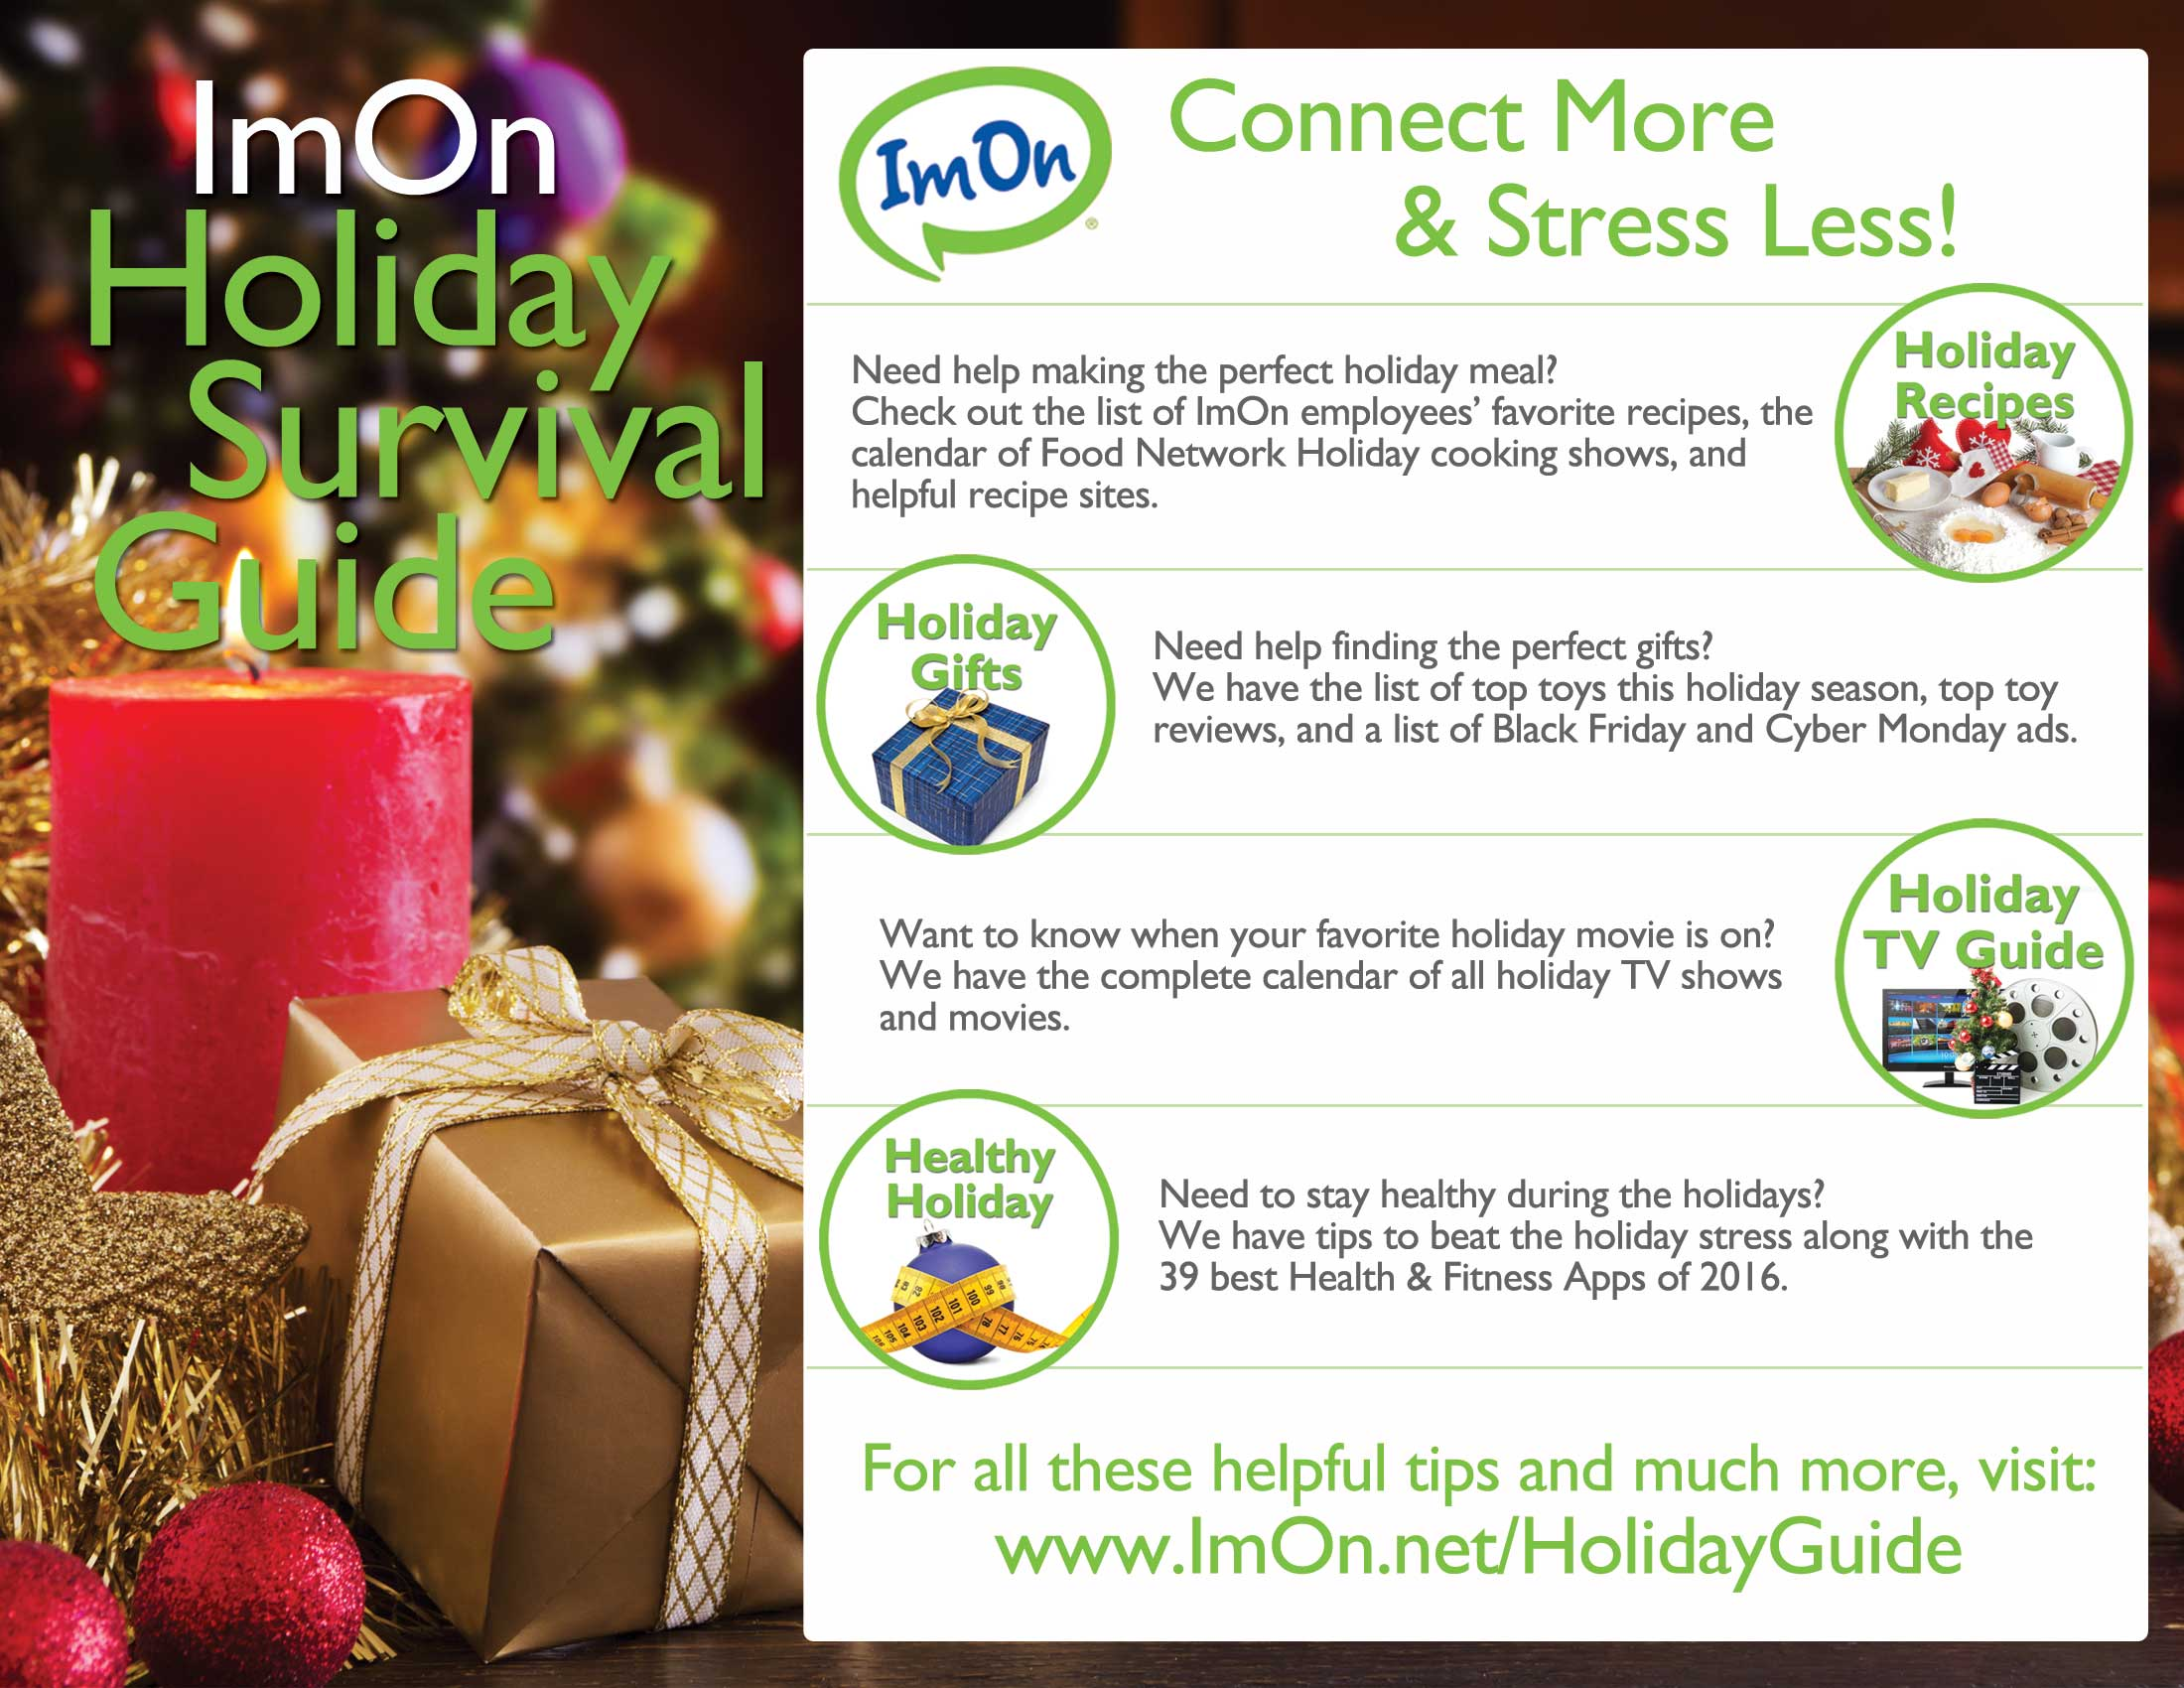 ImOn Holiday Survival Guide Image